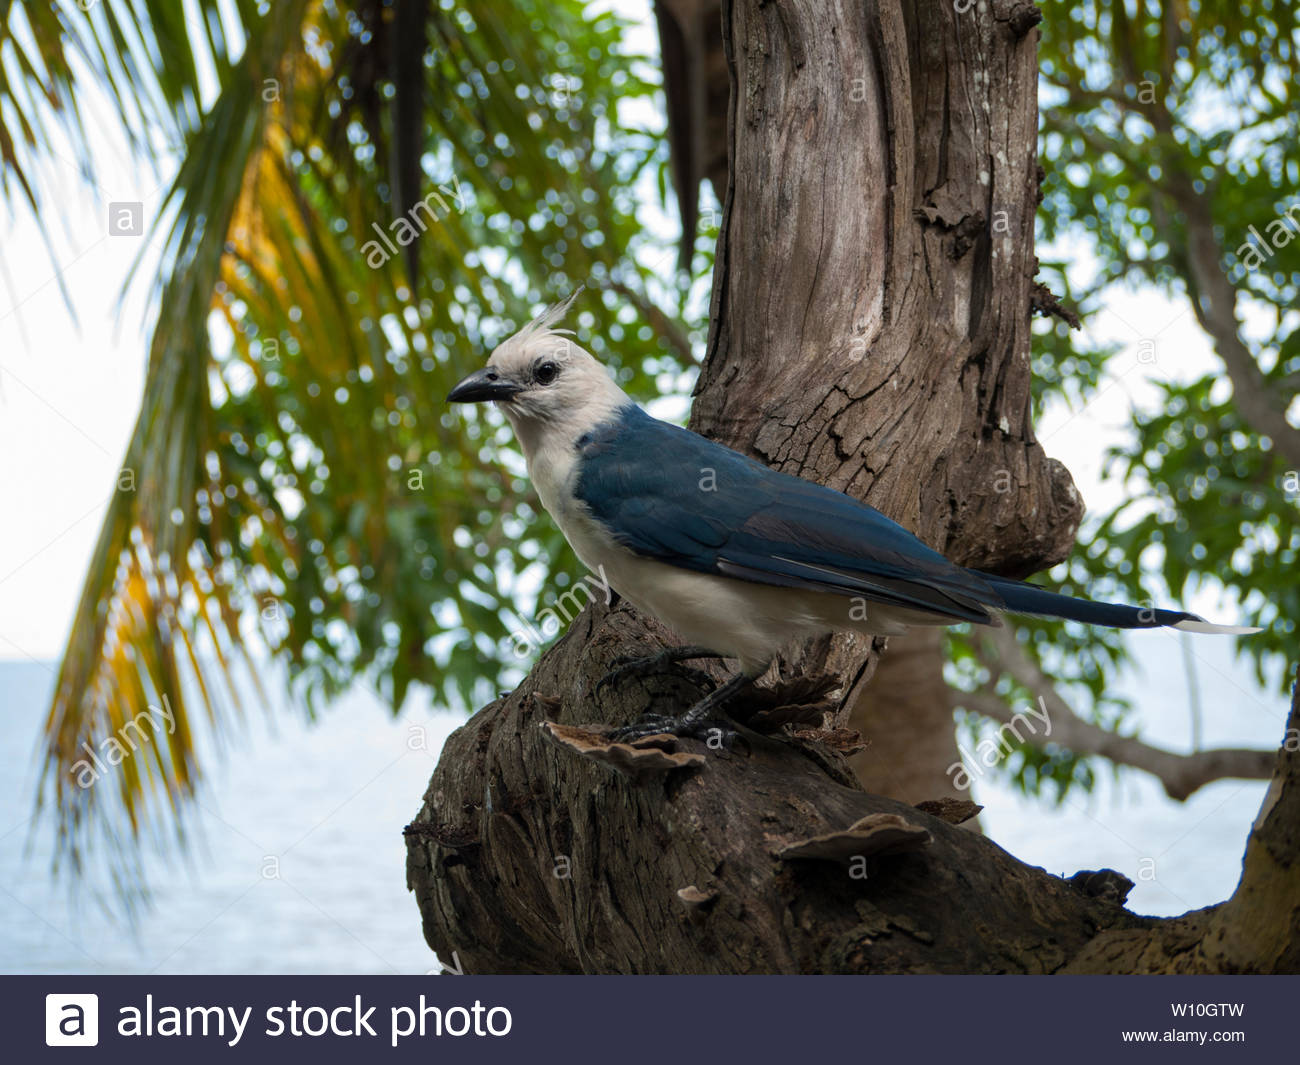 https://c7.alamy.com/comp/W10GTW/a-very-tame-partially-leucistic-white-throated-magpie-jay-eyes-diners-at-a-playa-santo-domingo-restaurant-on-ometepe-island-nicaragua-W10GTW.jpg